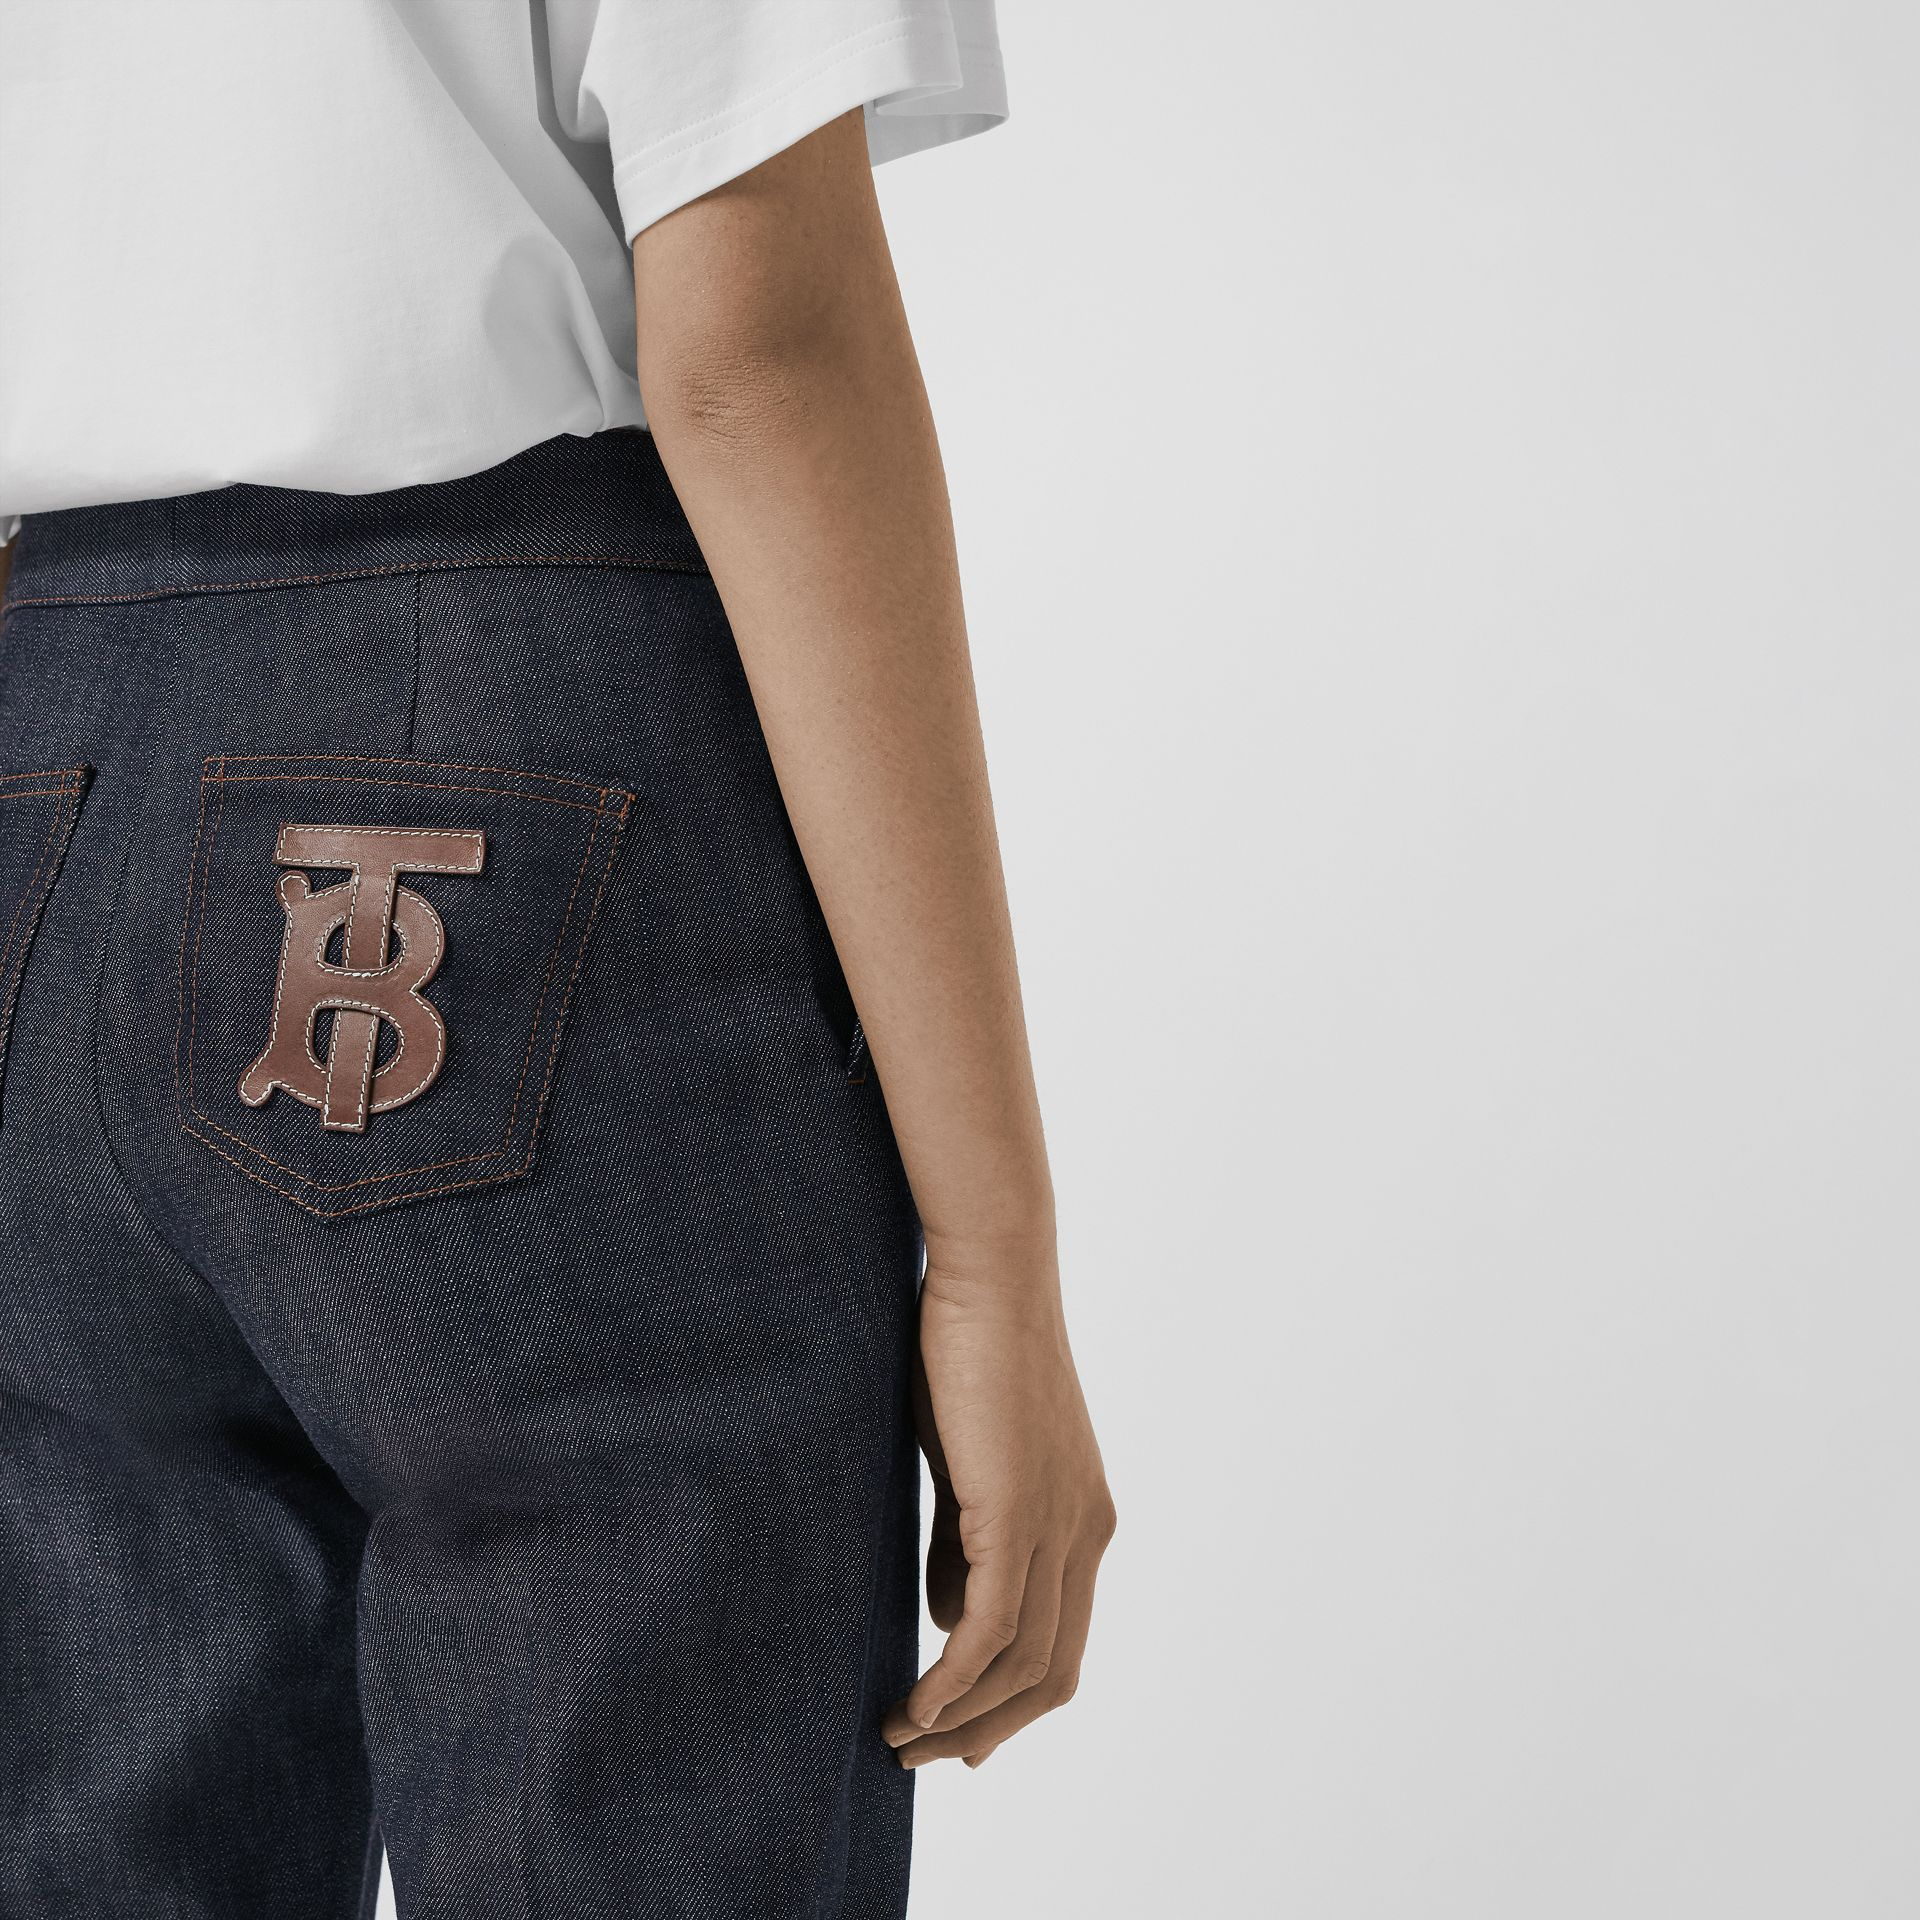 Straight Fit Monogram Motif Japanese Denim Jeans in Indigo - Women | Burberry - gallery image 1